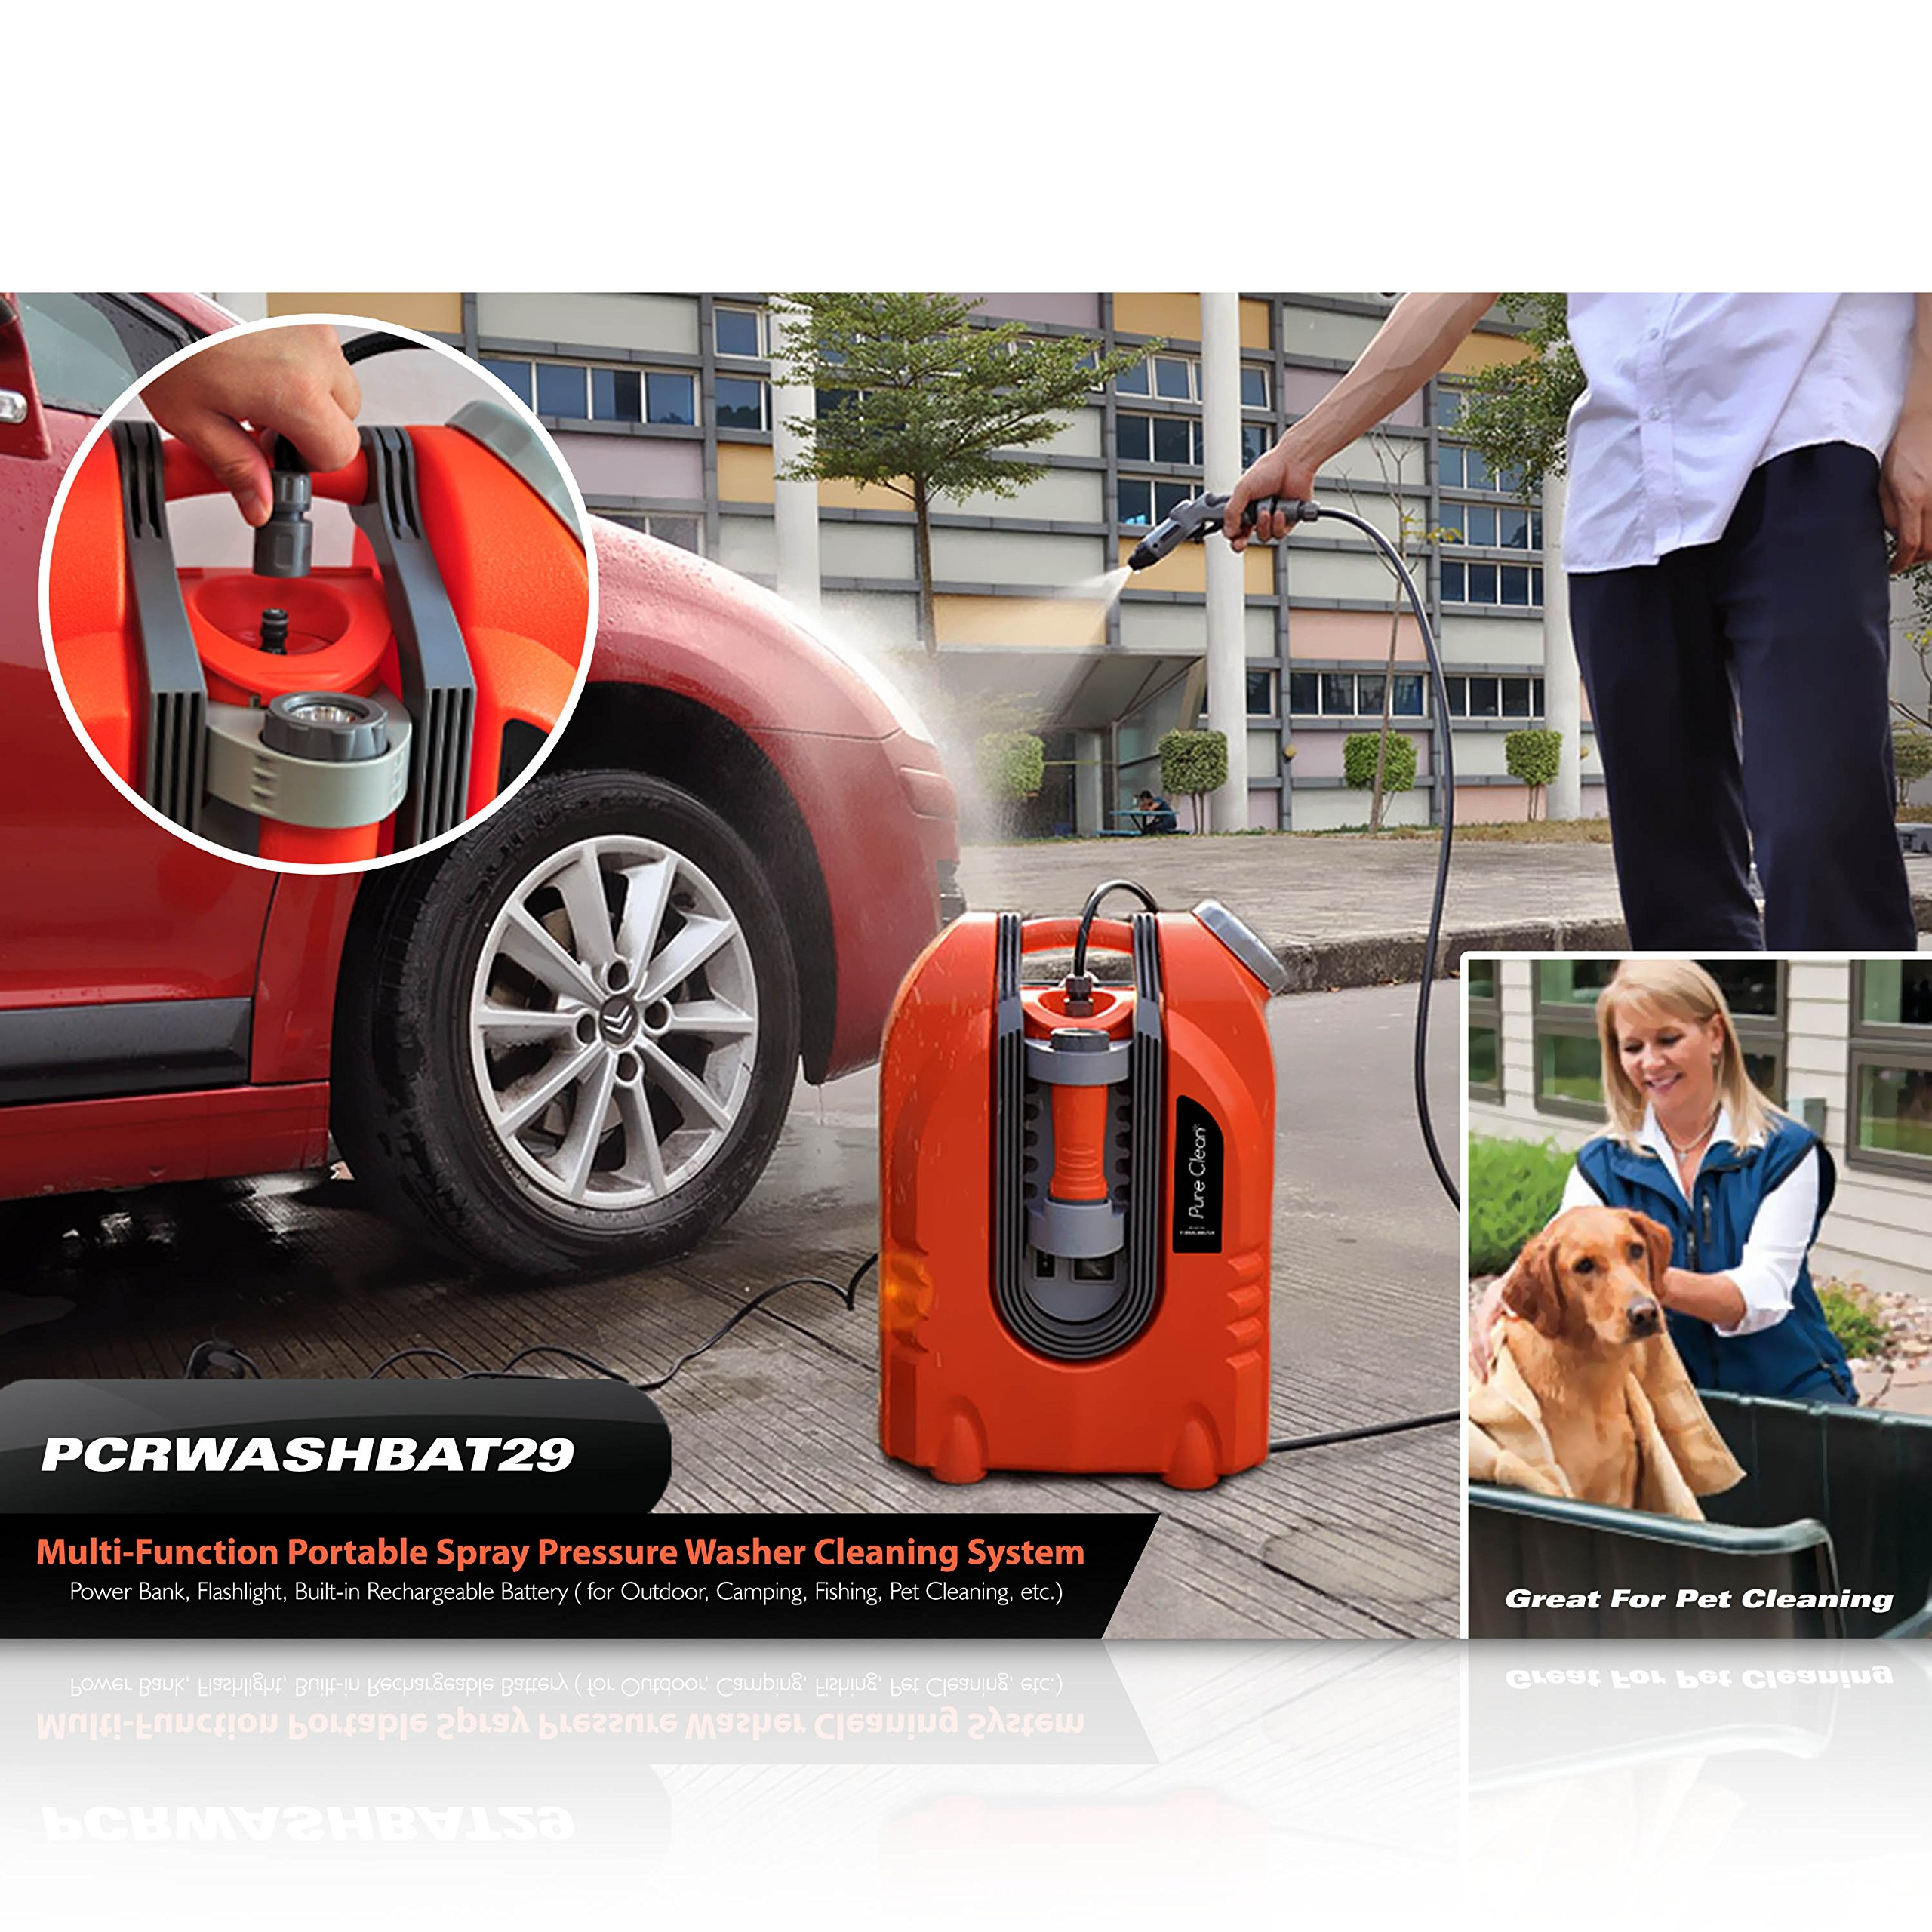 Pure Clean PCRWASHBAT29 portable spray washer W/ Flash Light - Power bank - Carrying Wheels by Pure Clean (Image #9)